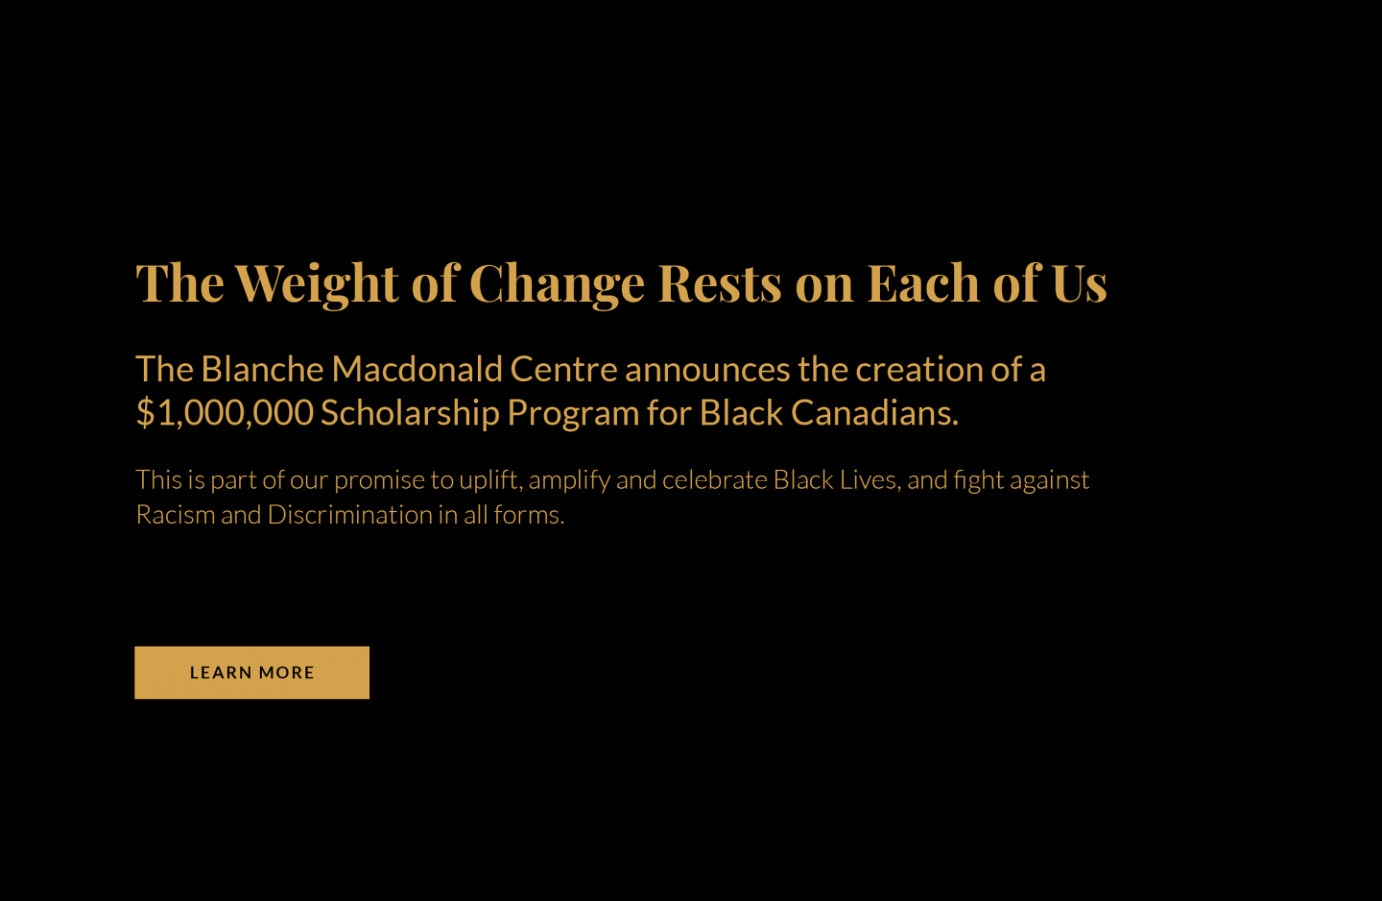 Blanche Macdonald launches scholarship program for Black Canadians